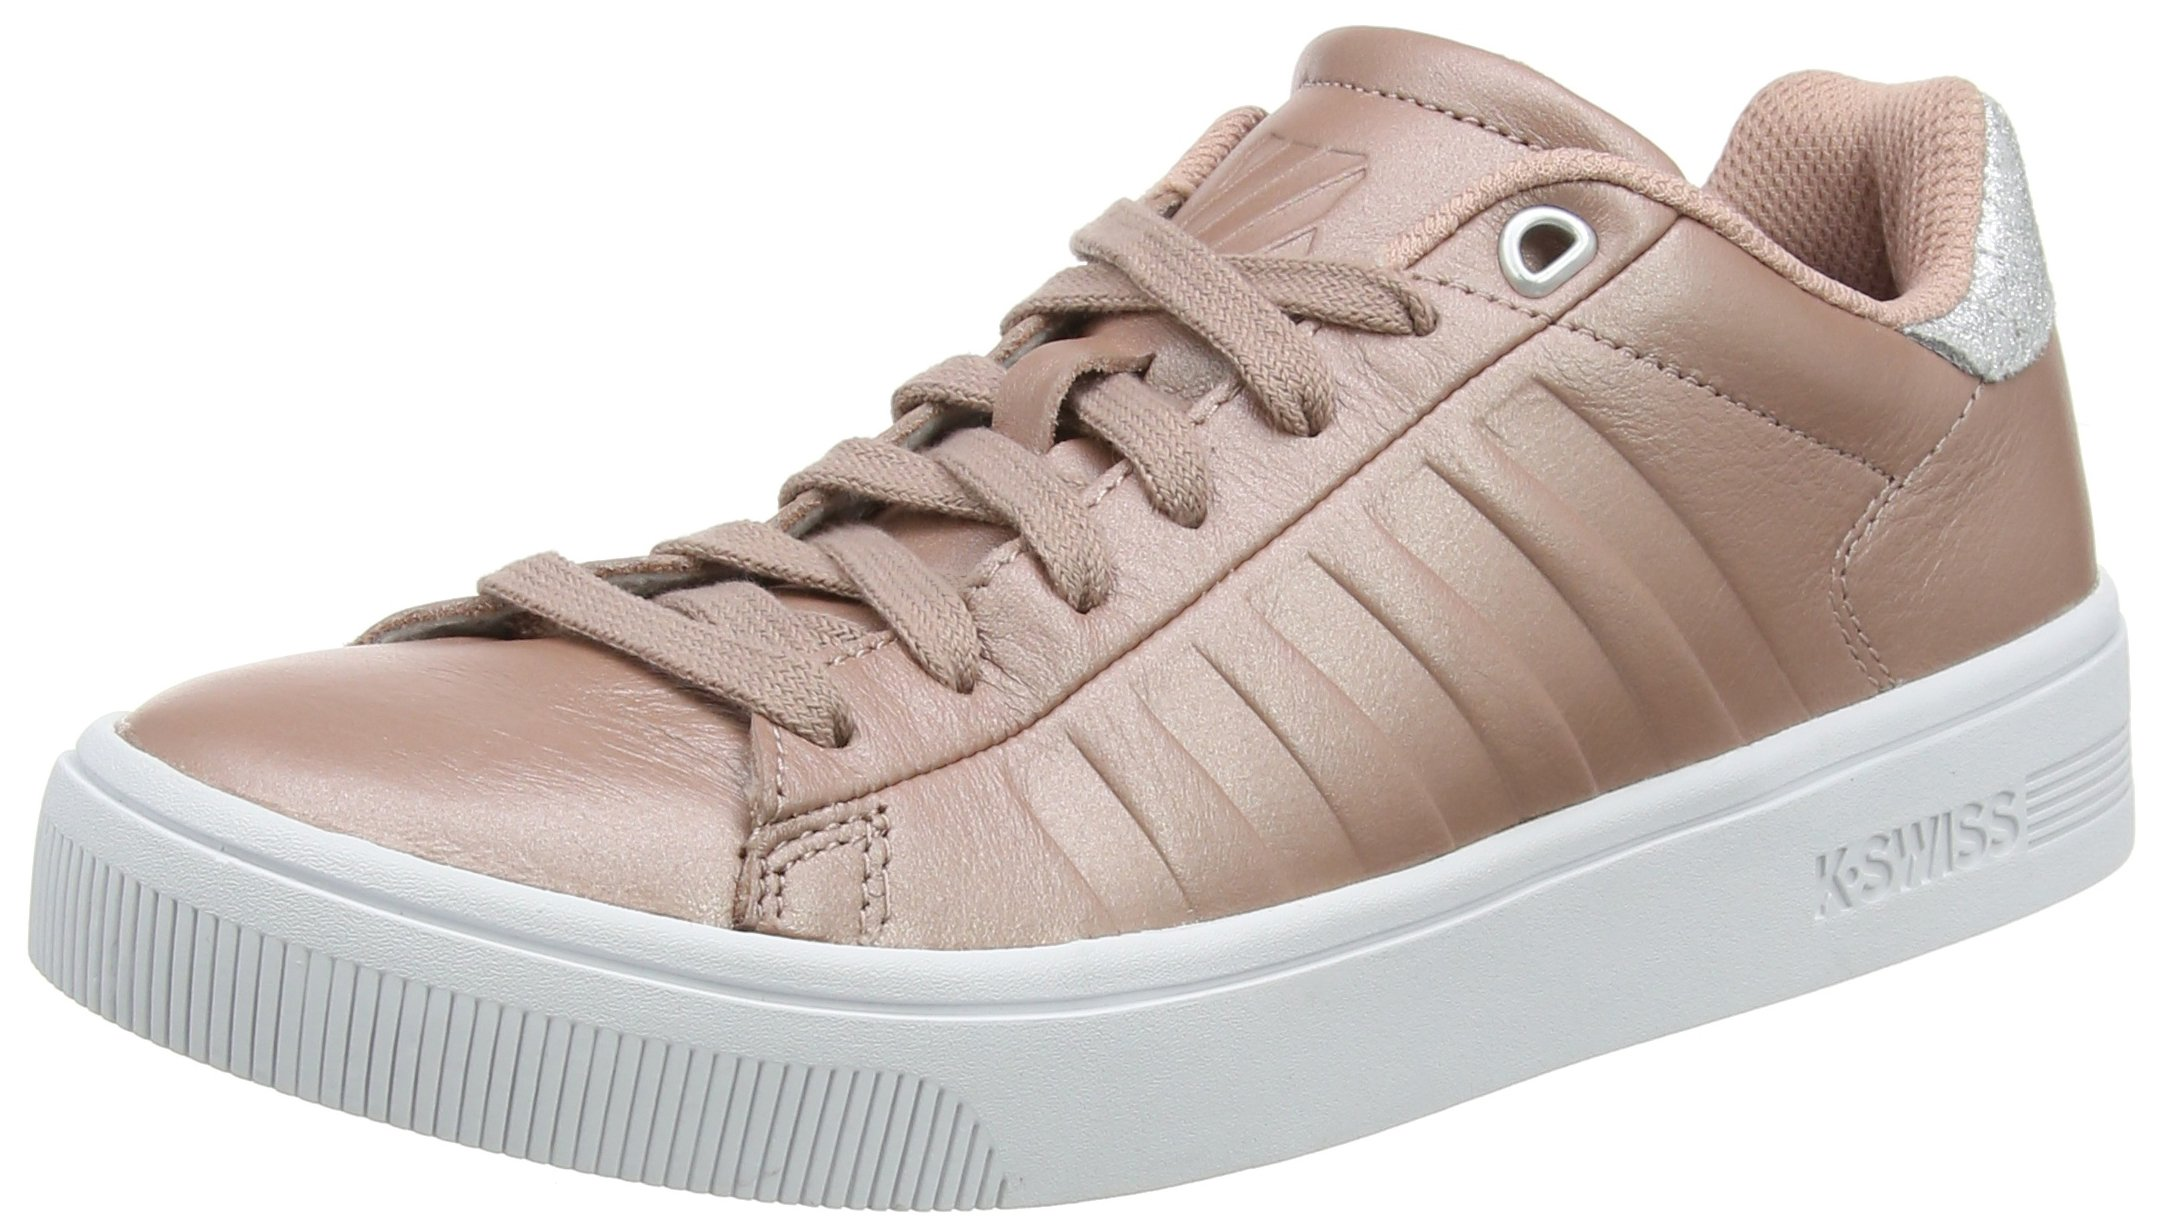 K-Swiss Women's Court Frasco Sneaker, Rose/Silver/White, 7.5 M US